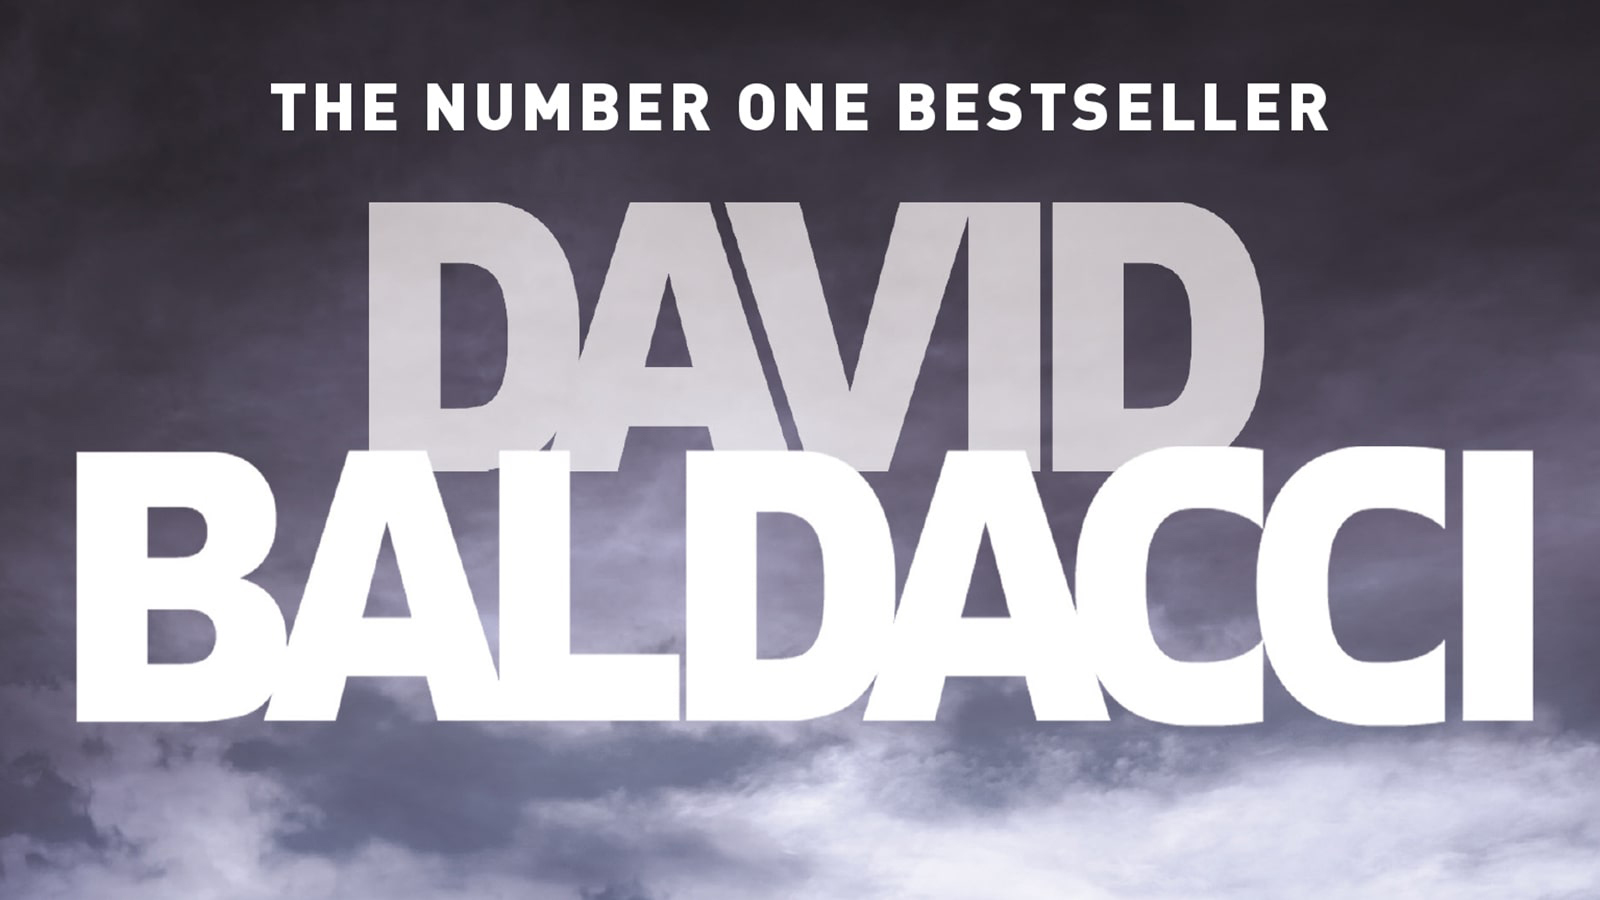 David Baldacci books in order